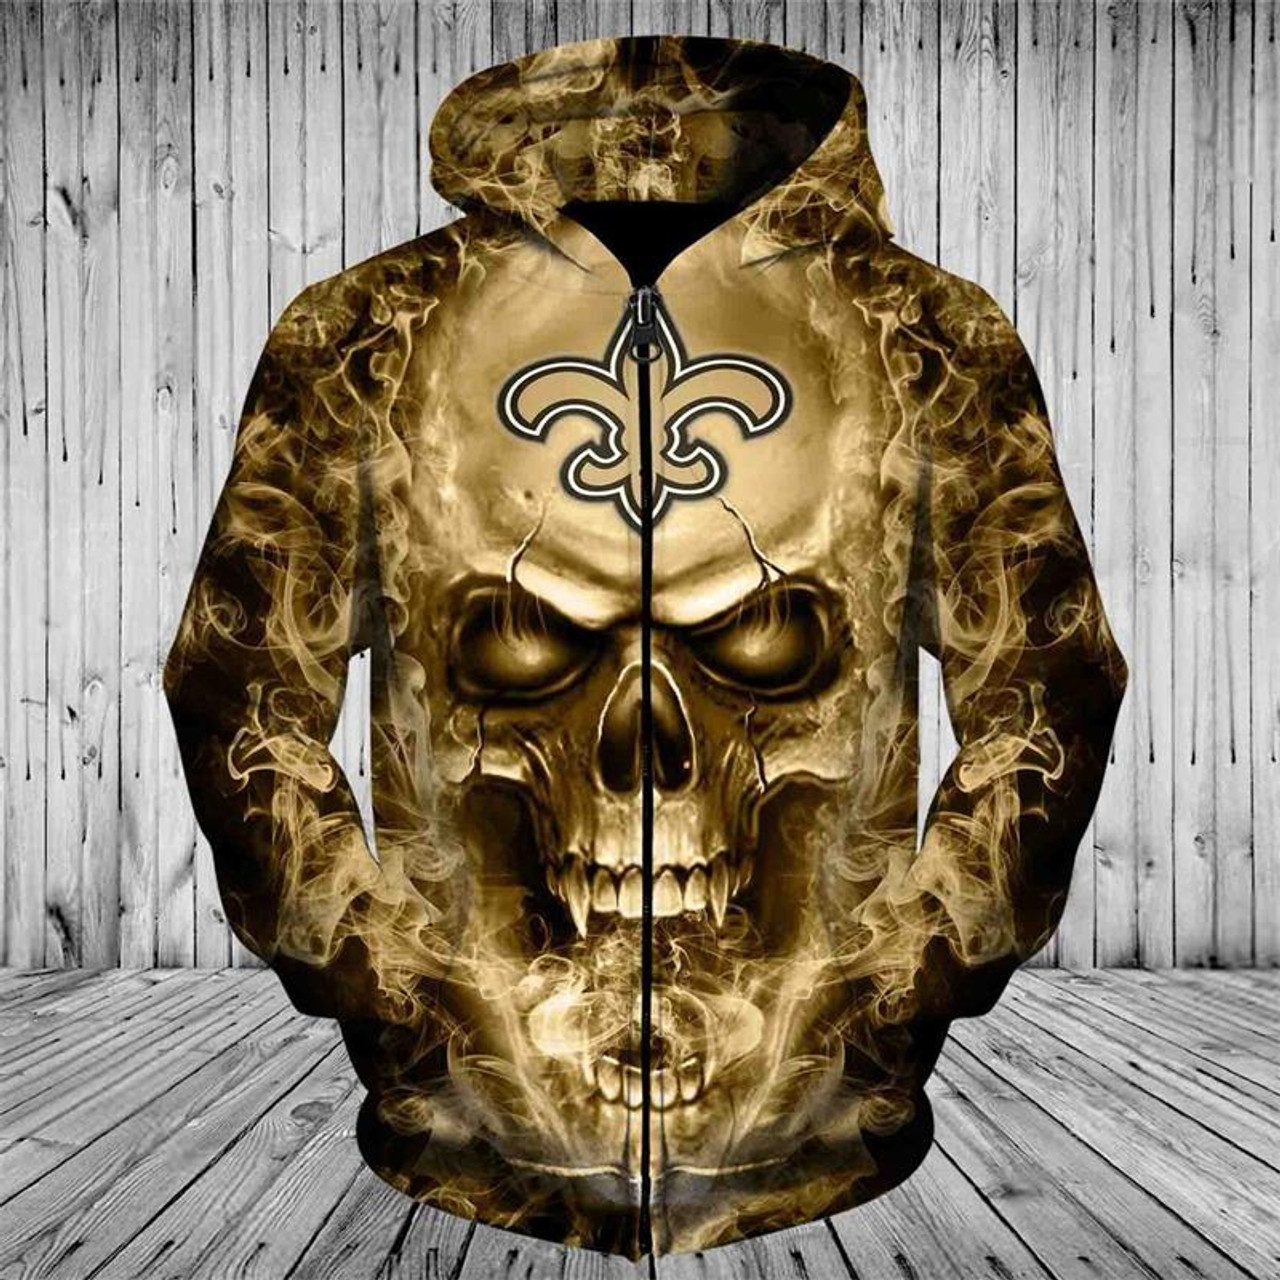 huge discount bb4d7 c4988 **(OFFICIAL-N.F.L.NEW-ORLEANS-SAINTS-ZIPPERED-HOODIES/CUSTOM-3D-NEON-GOLD-SAINTS-SMOKING-SKULL,PREMIUM-3D-GRAPHIC-PRINTED/DOUBLE-SIDED-N.F.L.SAINTS-TE...